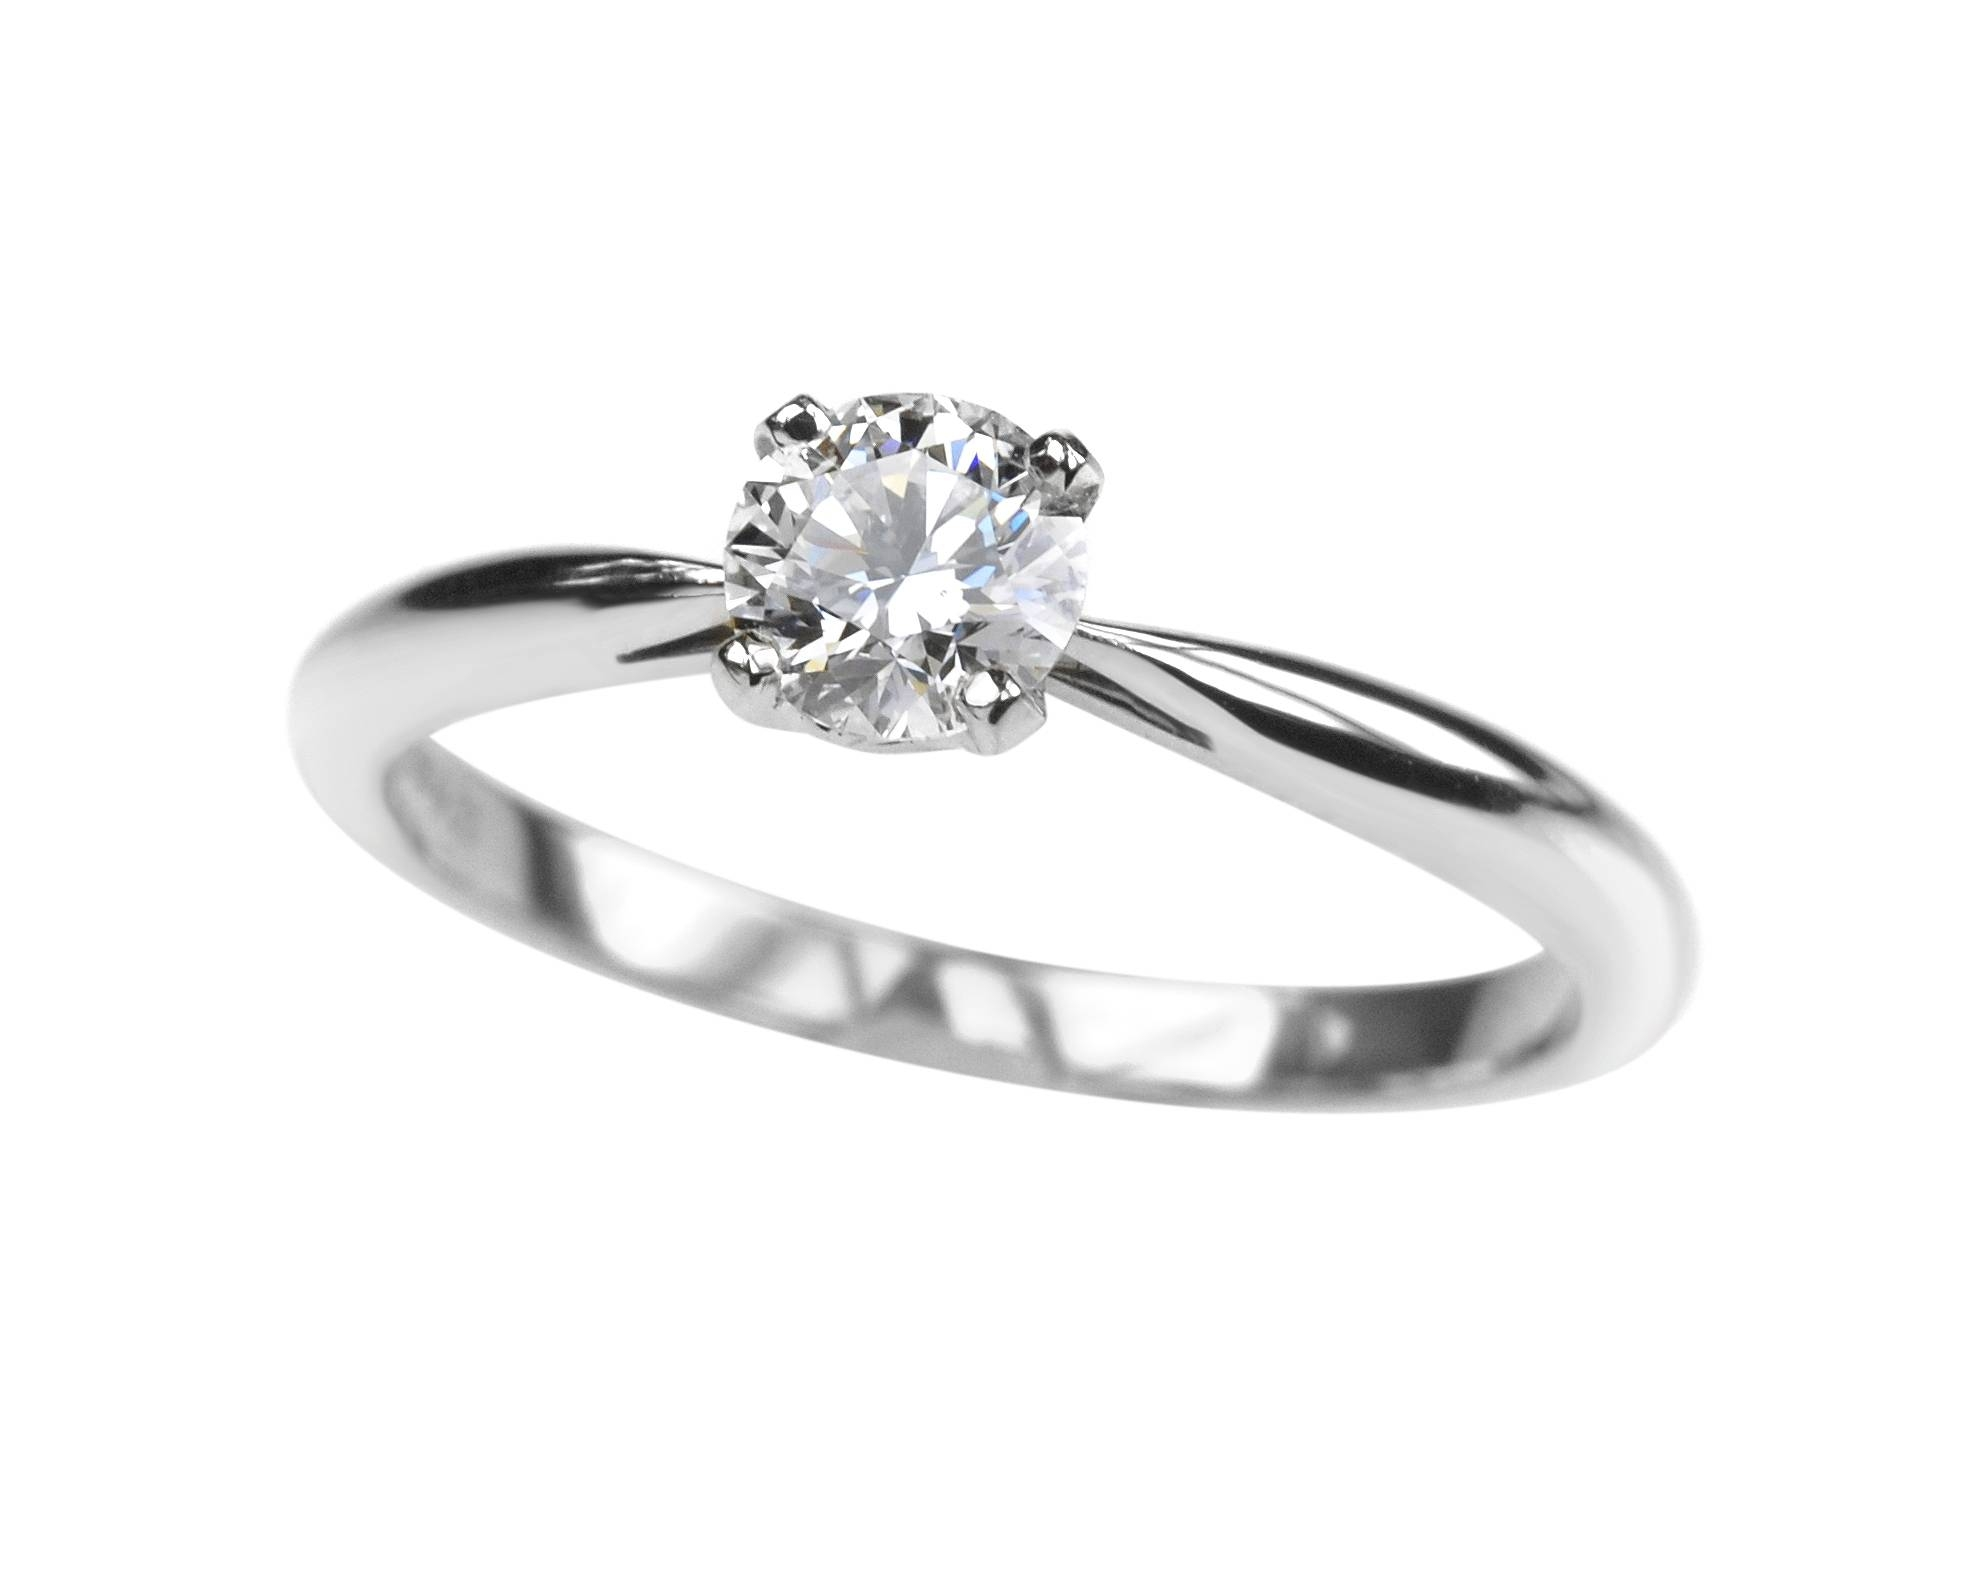 Wedding Rings : Engagement Ring Without Diamond Engagement Ring Within Simple Engagement Rings Without Diamond (View 14 of 15)